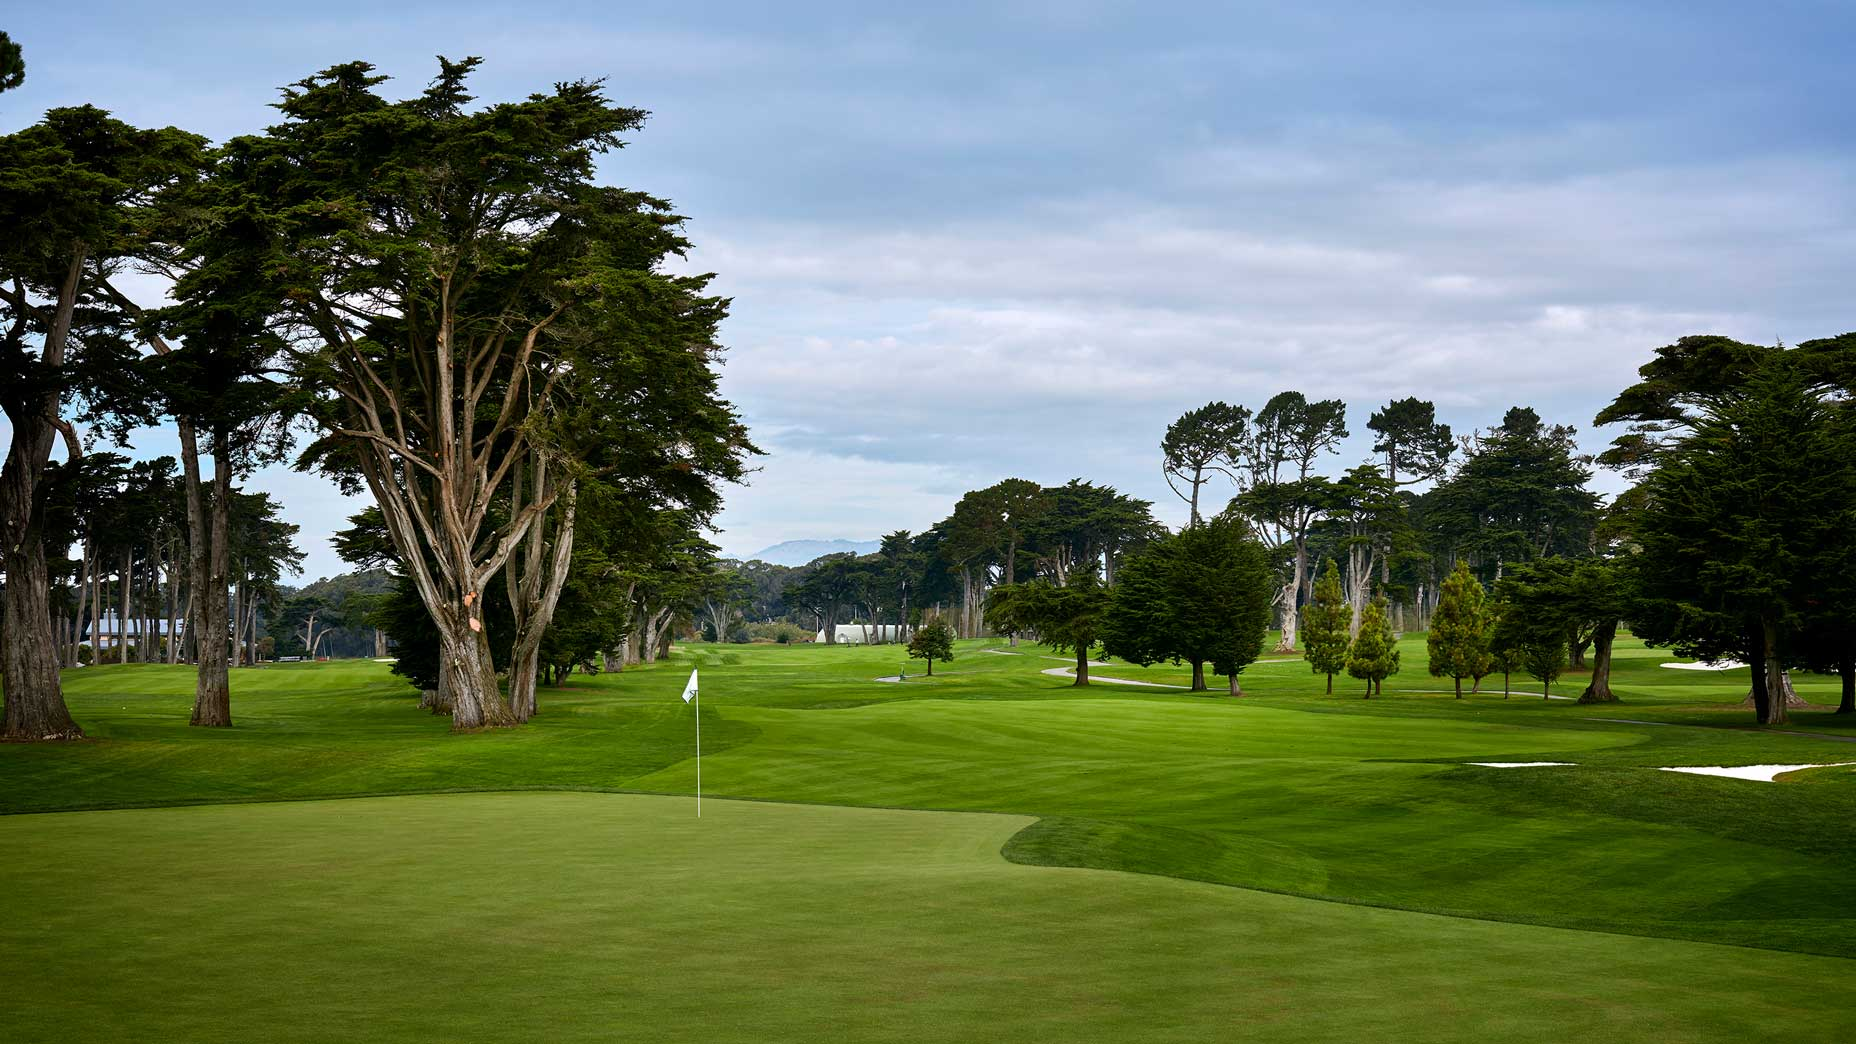 The 340-yard, par-4 7th hole at TPC Harding Park in 2018.